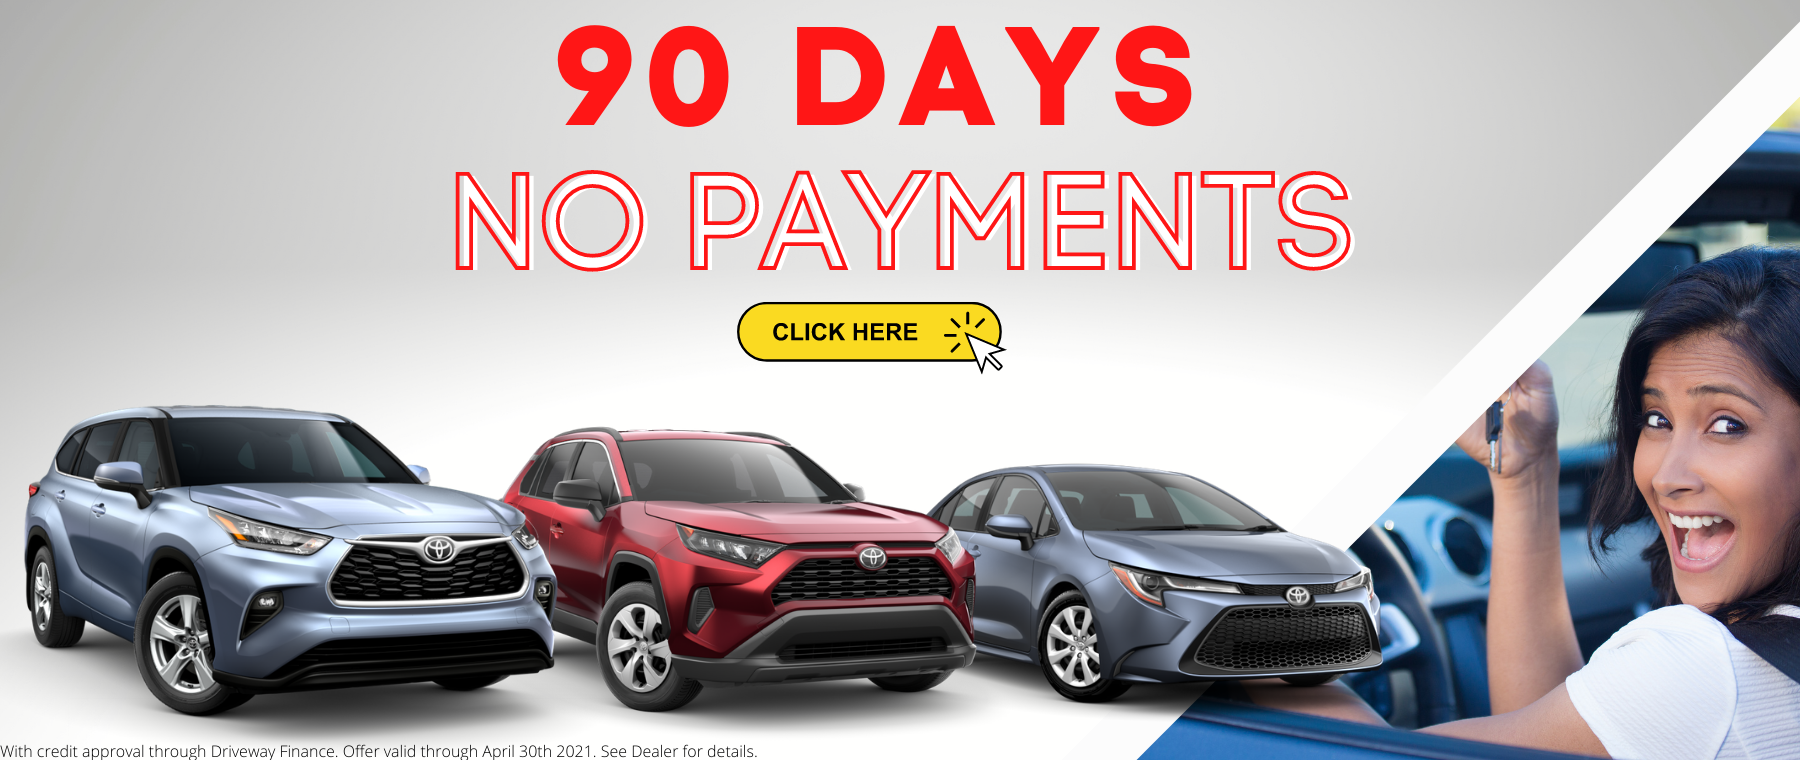 90 Days No payments (1)